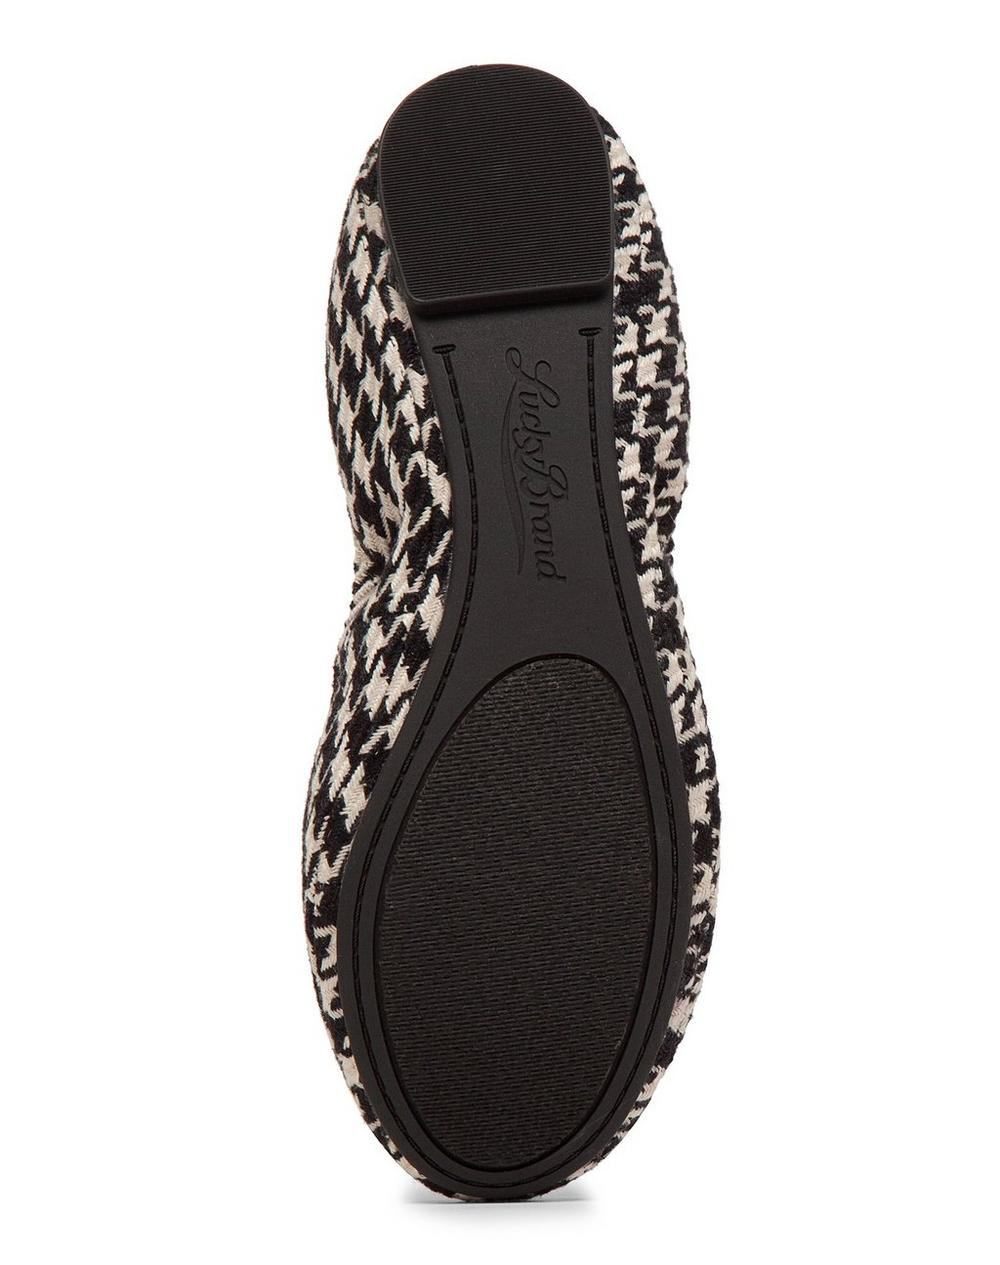 EMMIE LEATHER FLATS, image 5